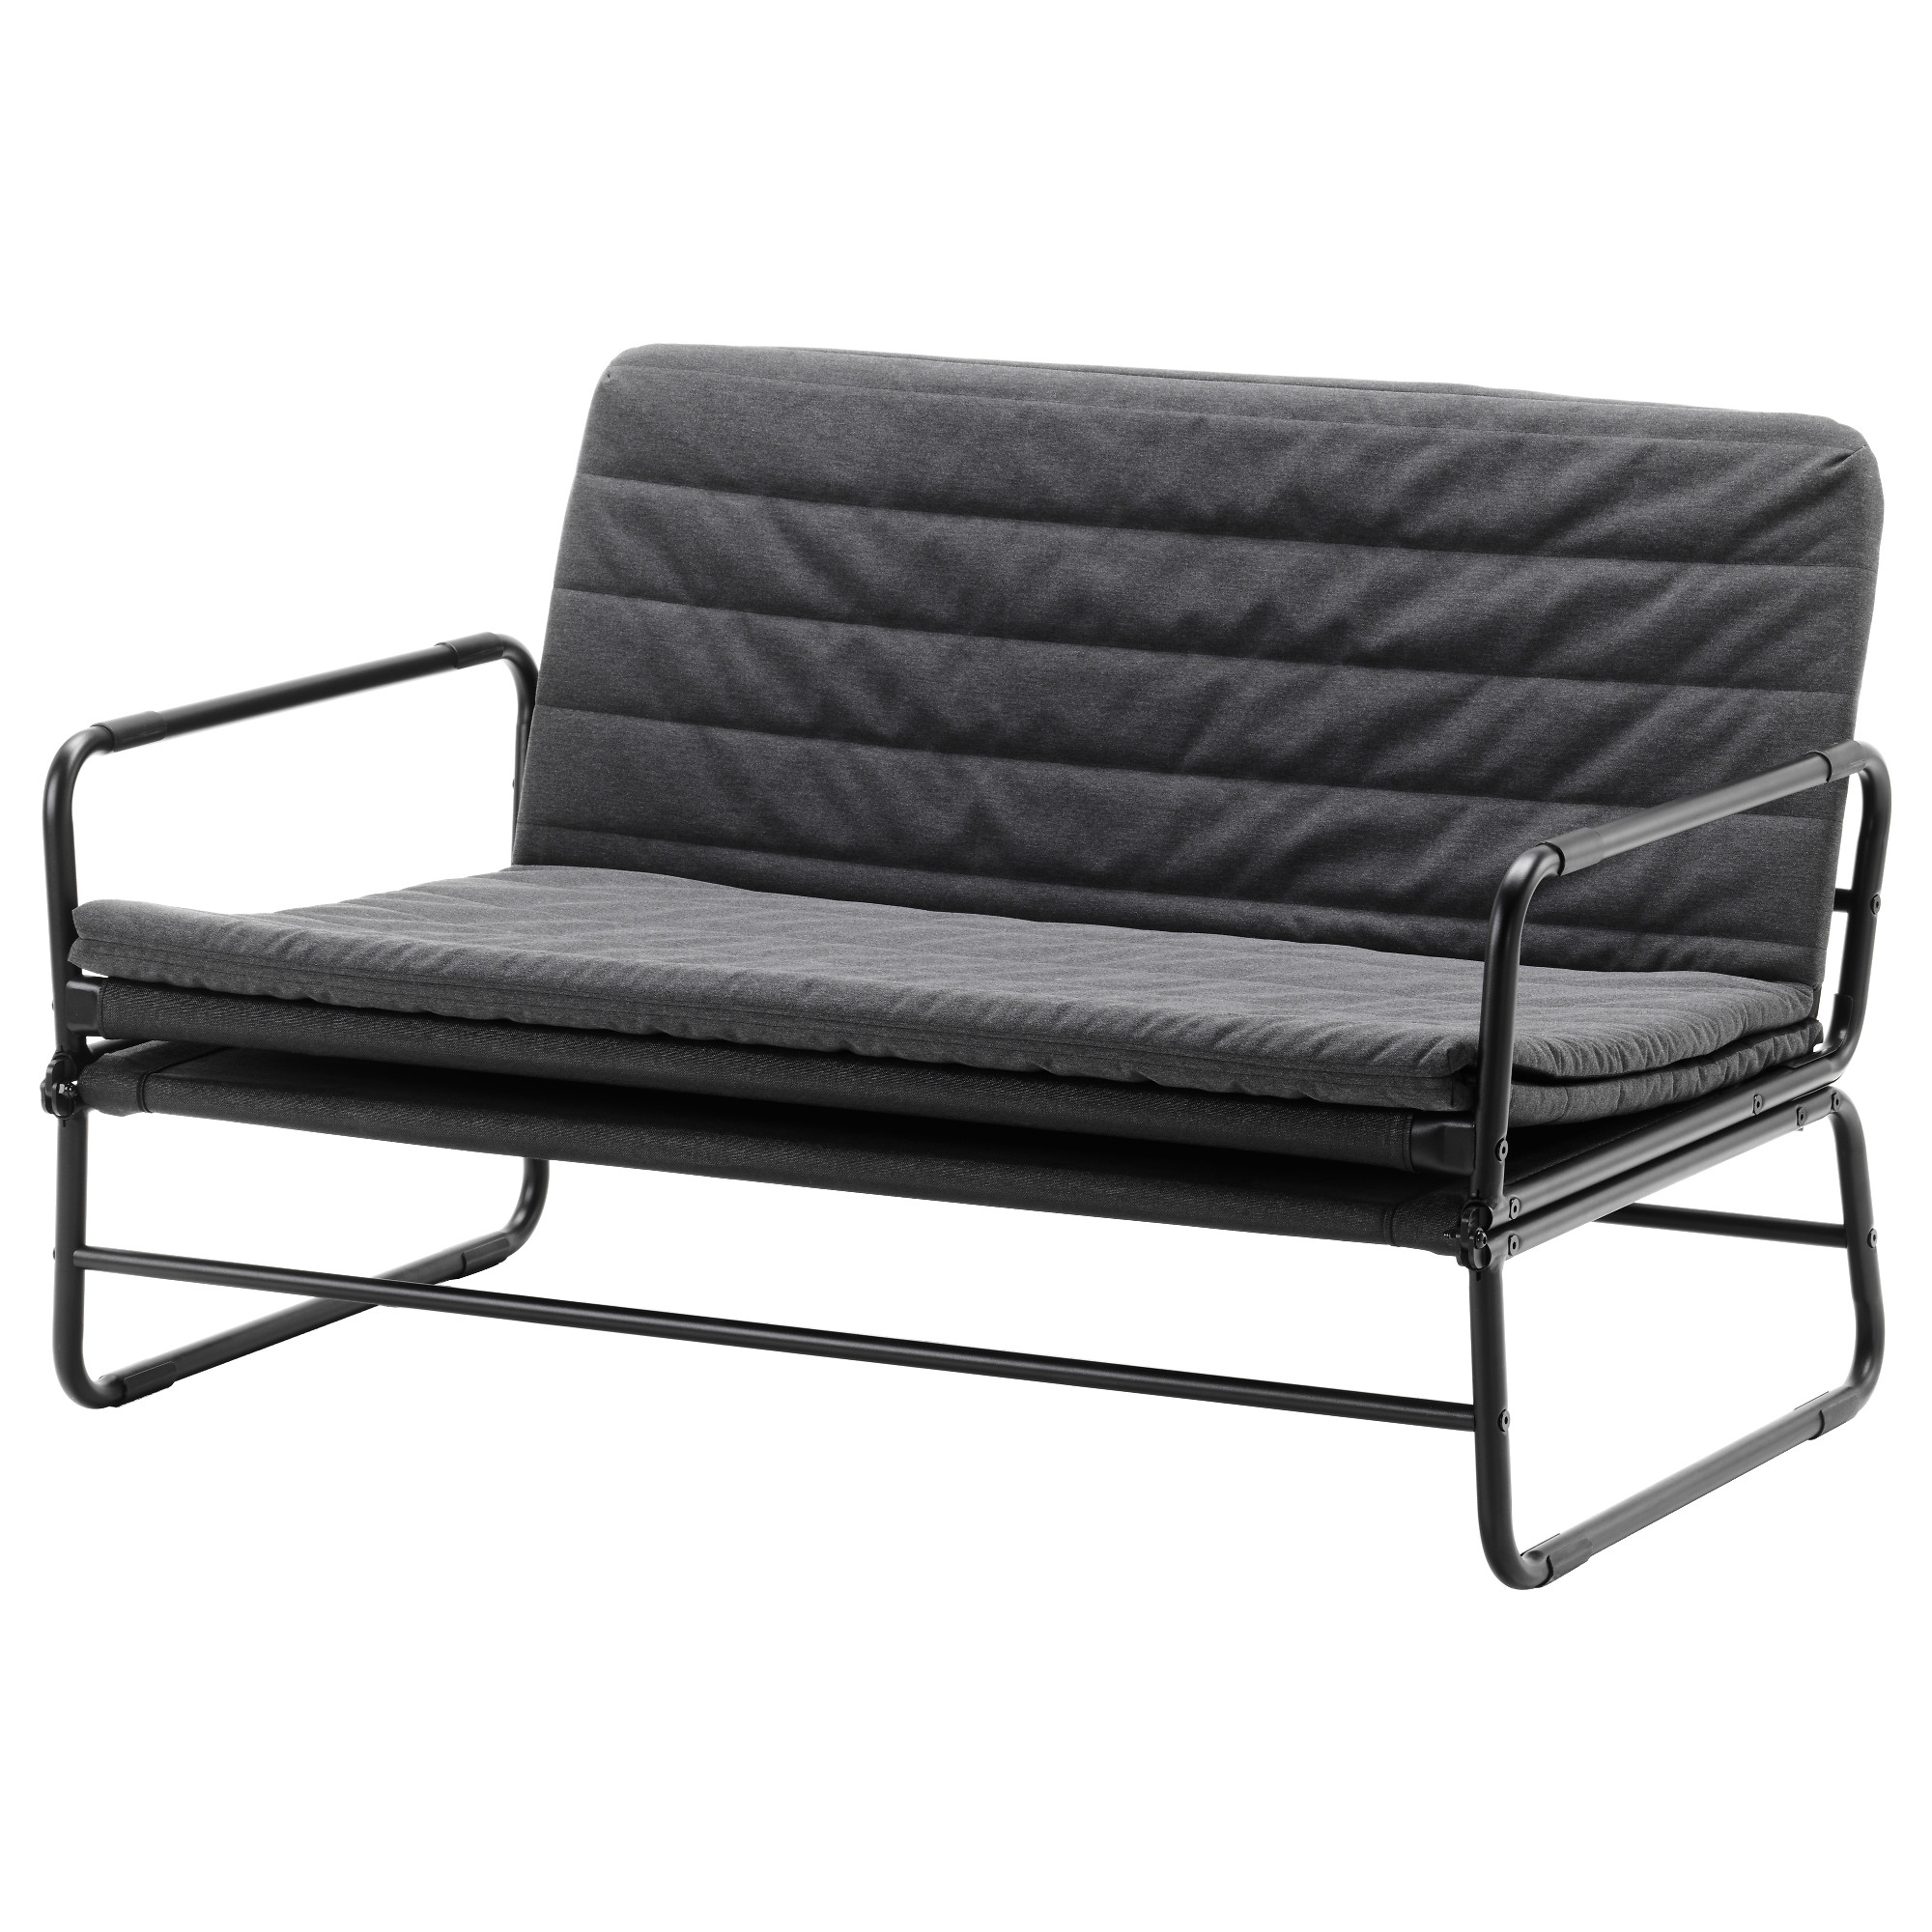 Ikea Backabro Bettsessel Ikea Sofa 79